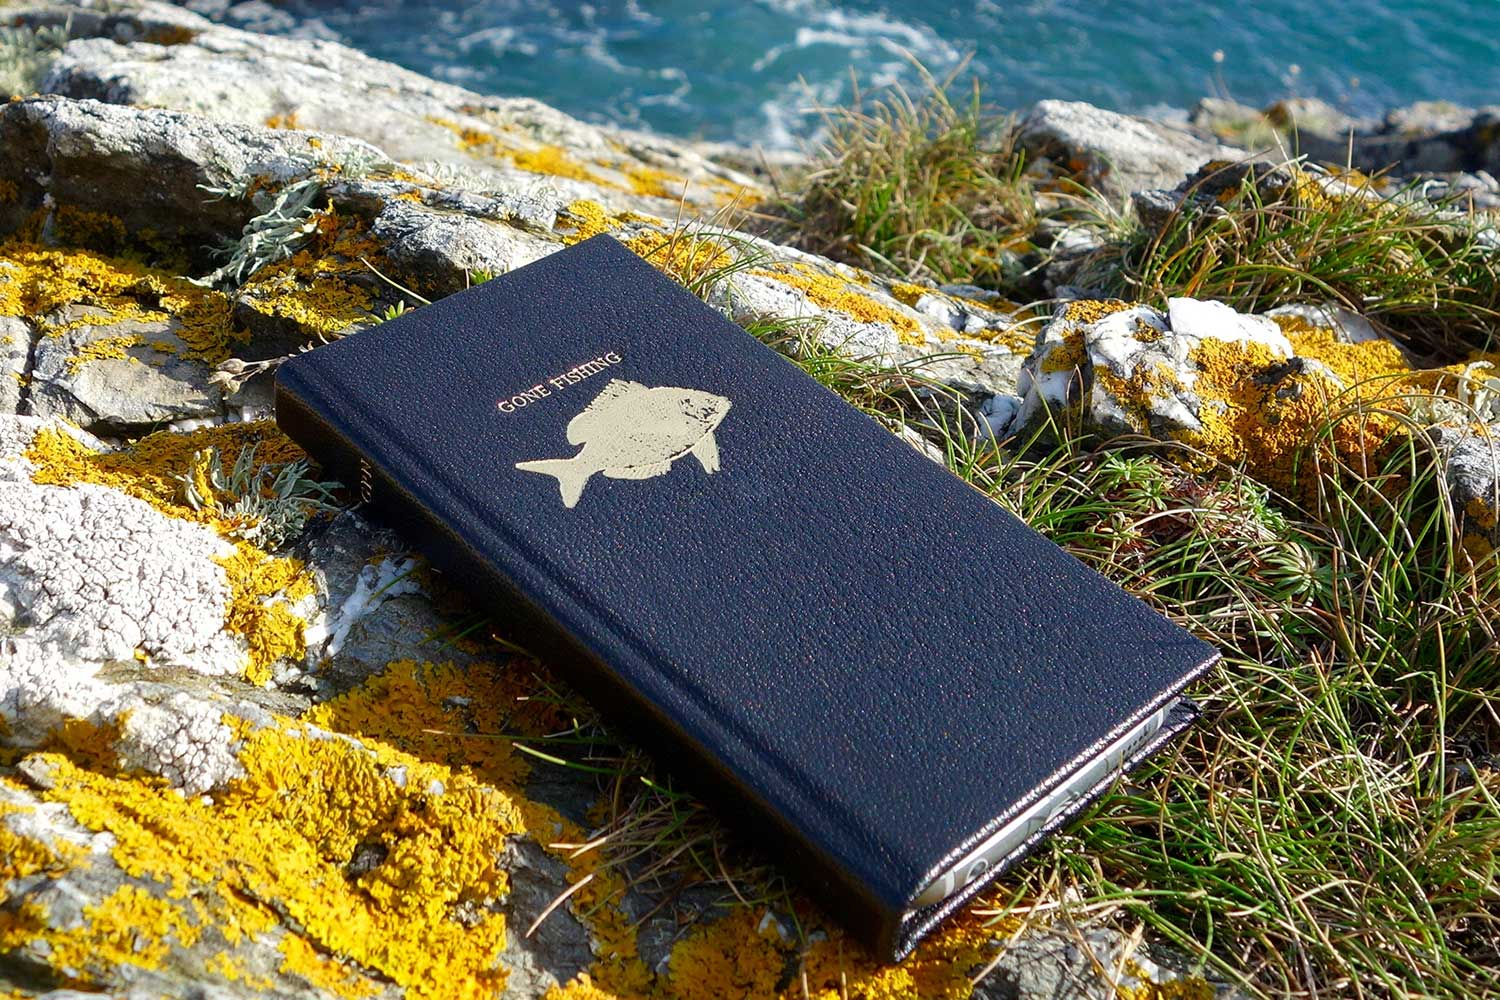 custom leather phone cases from Bookshell in black leather with fish picture